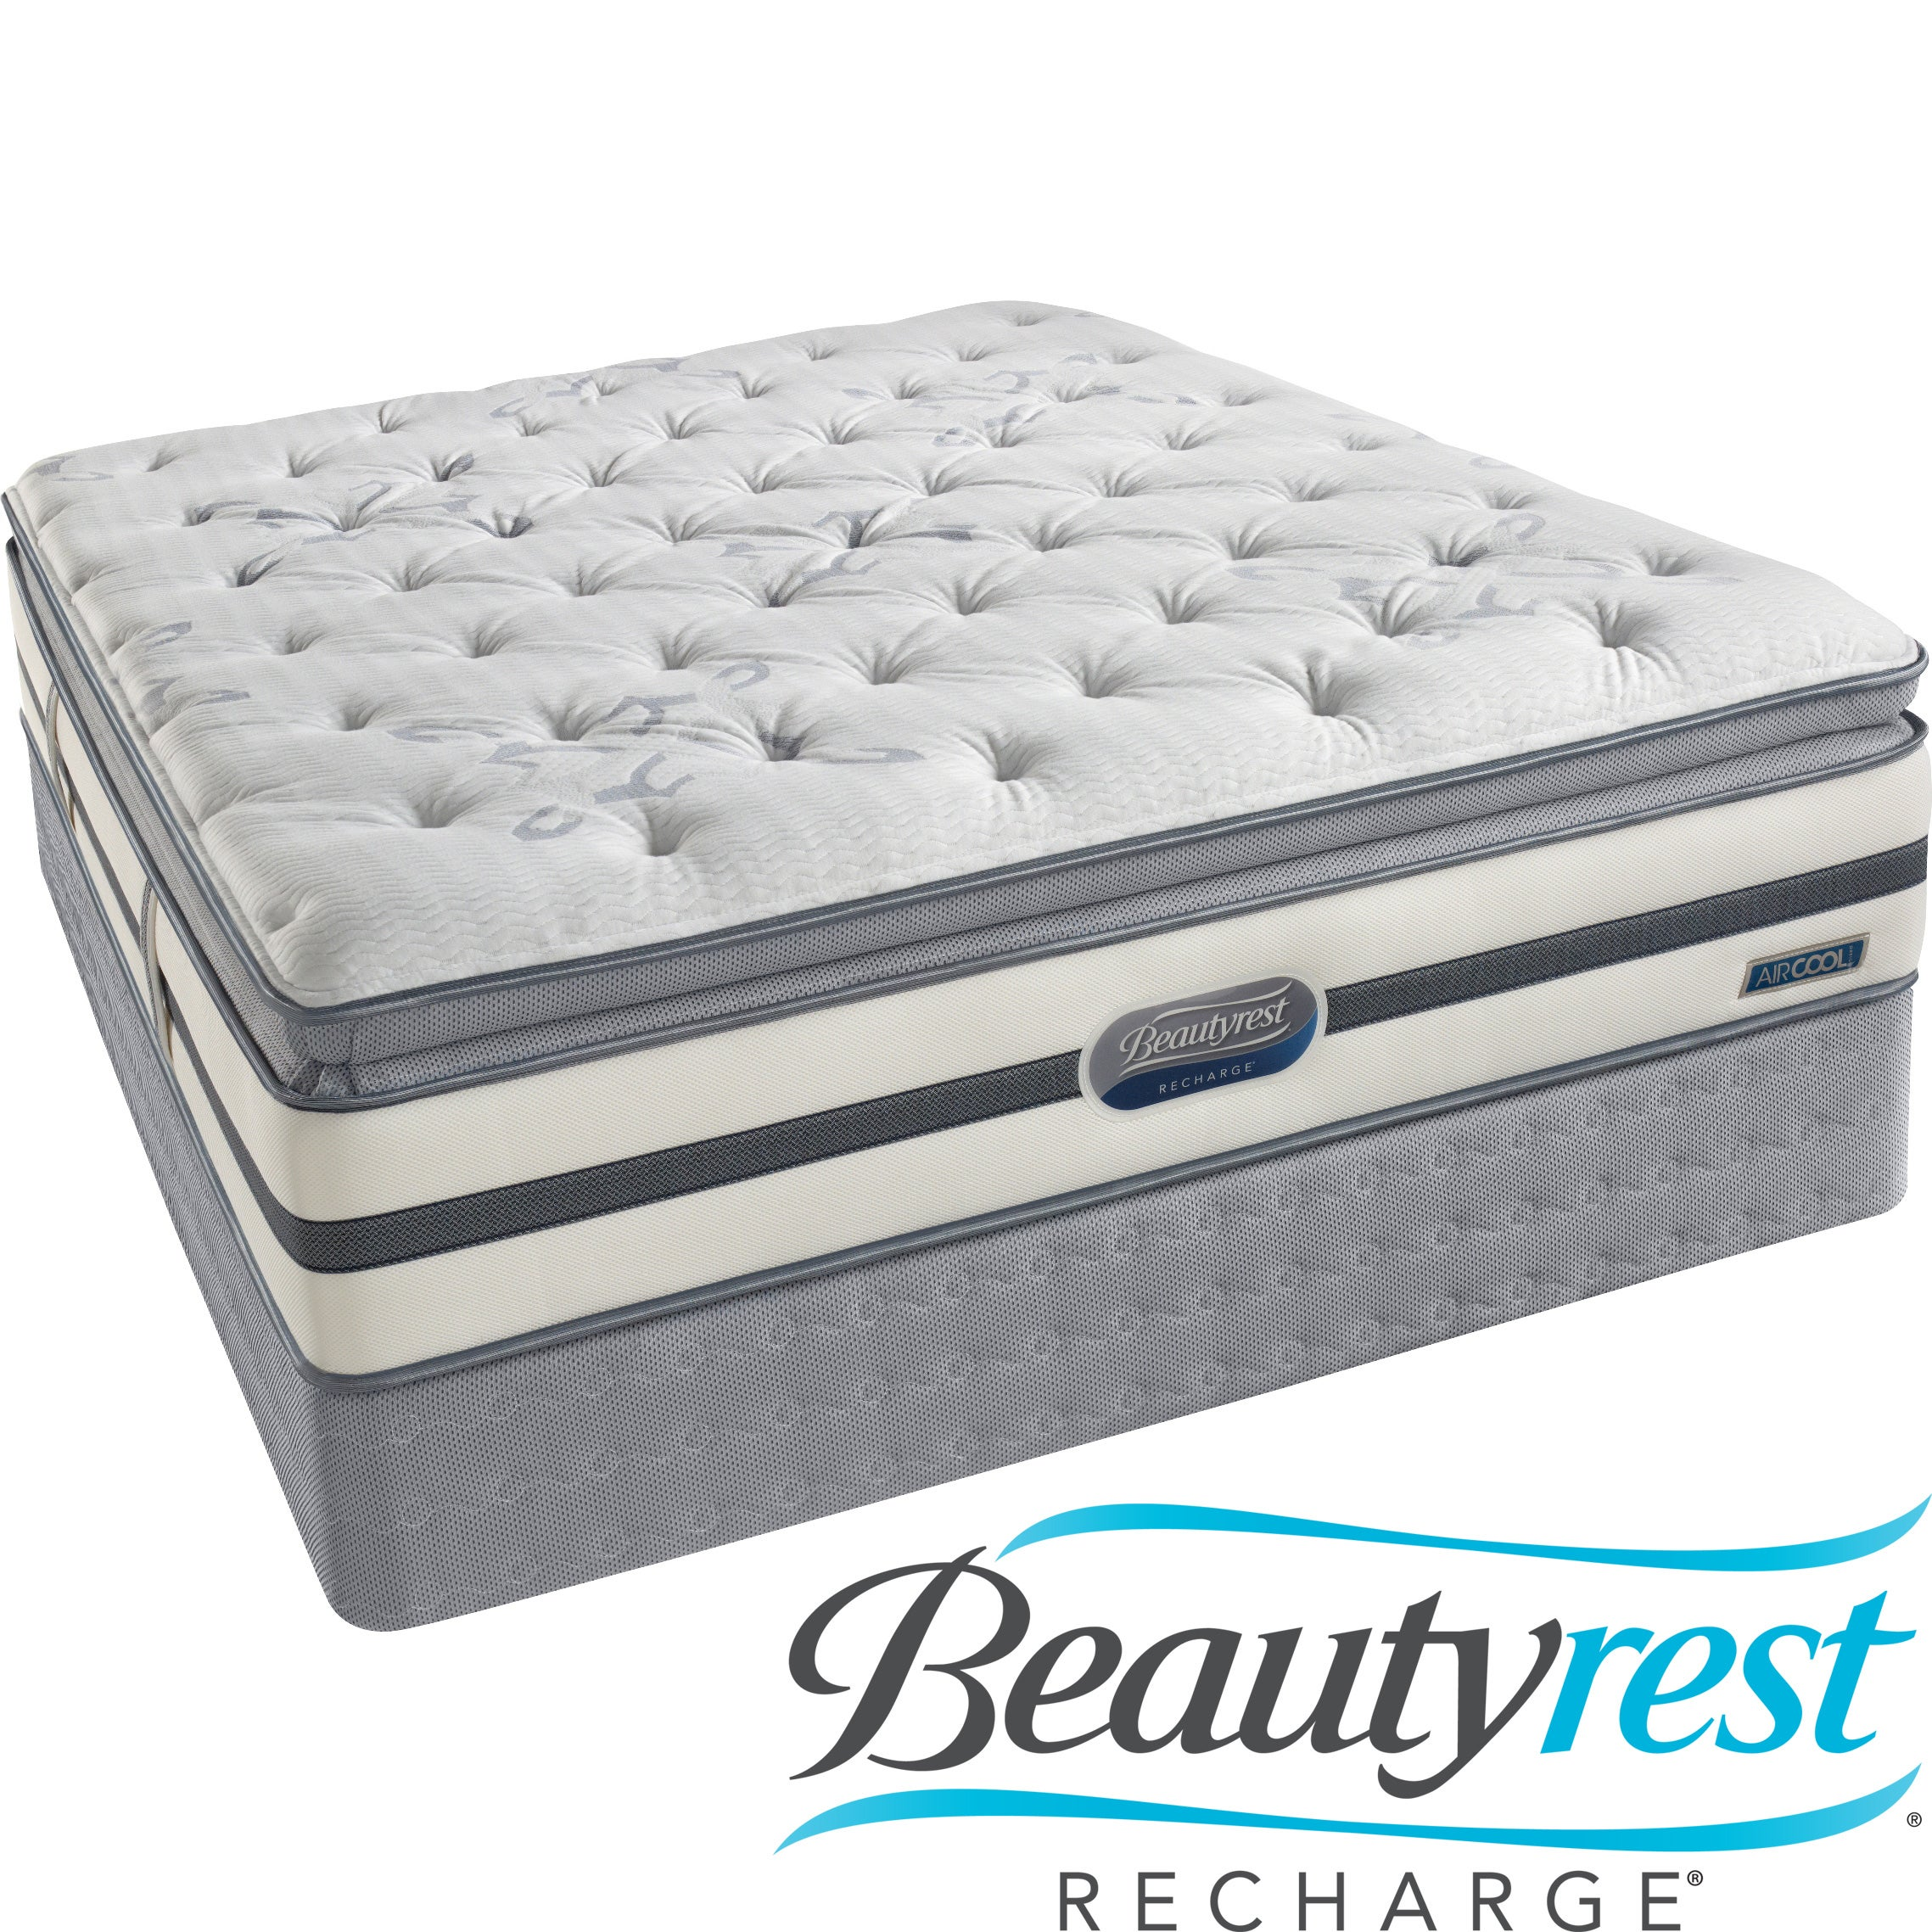 Beautyrest Recharge Spalding Luxury Firm Queen Mattress